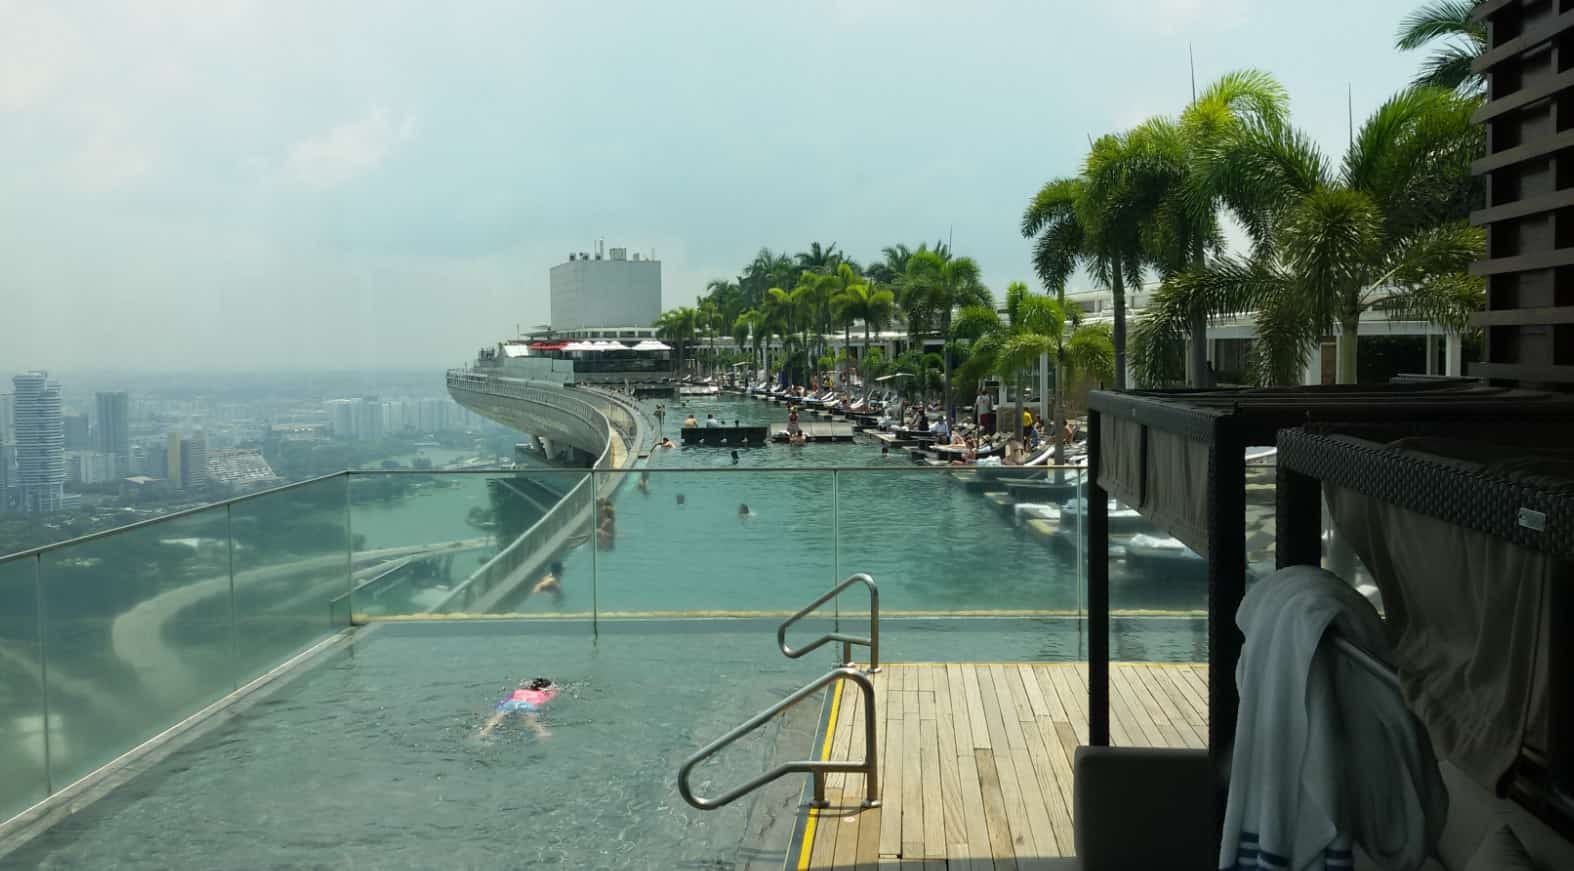 Marina bay sands hotel a singapore - Marina bay sands piscina ...